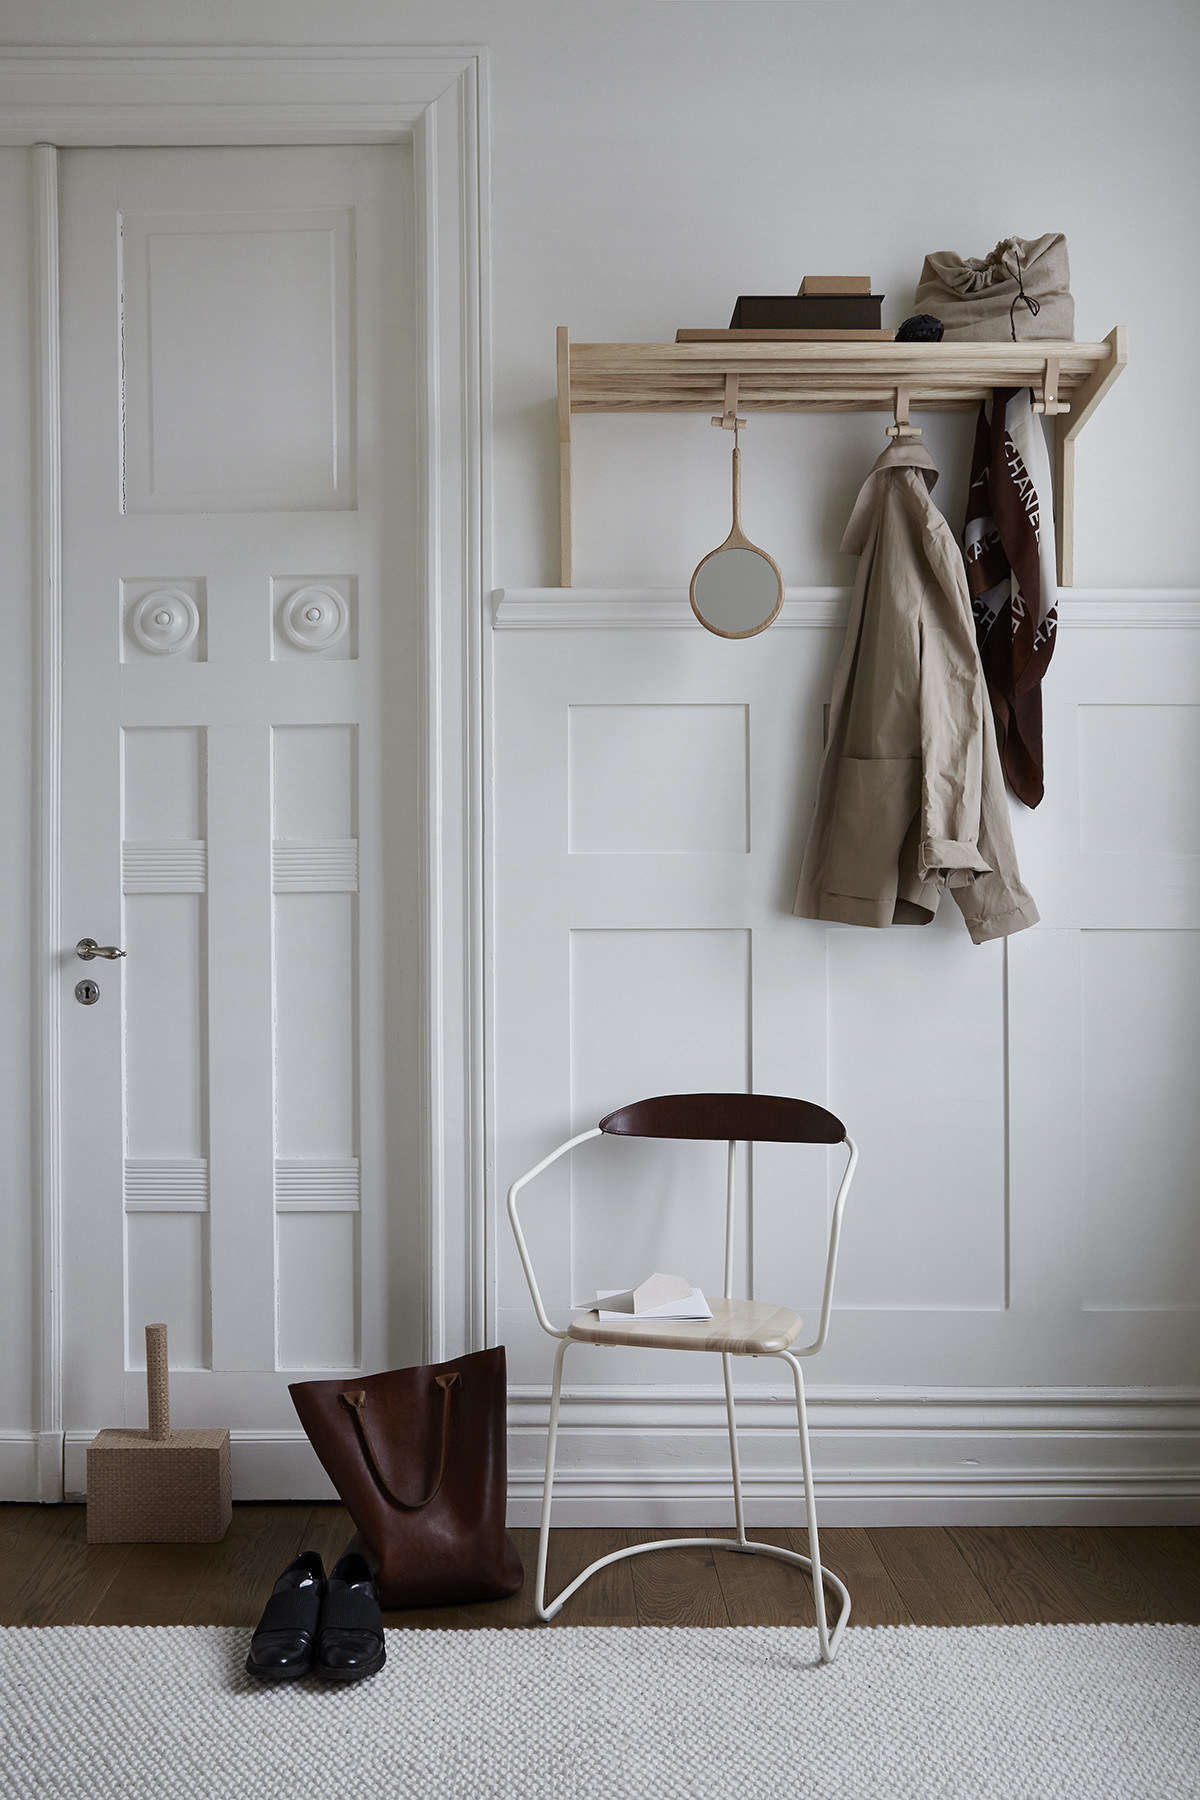 A simple hat rack by an eco-conscious Swedish company brings beautiful organization to a front entry. See more of its artful storage goods in Currently Coveting: Swedish Wood and Leather Designs from an Eco-Conscious Tannery.